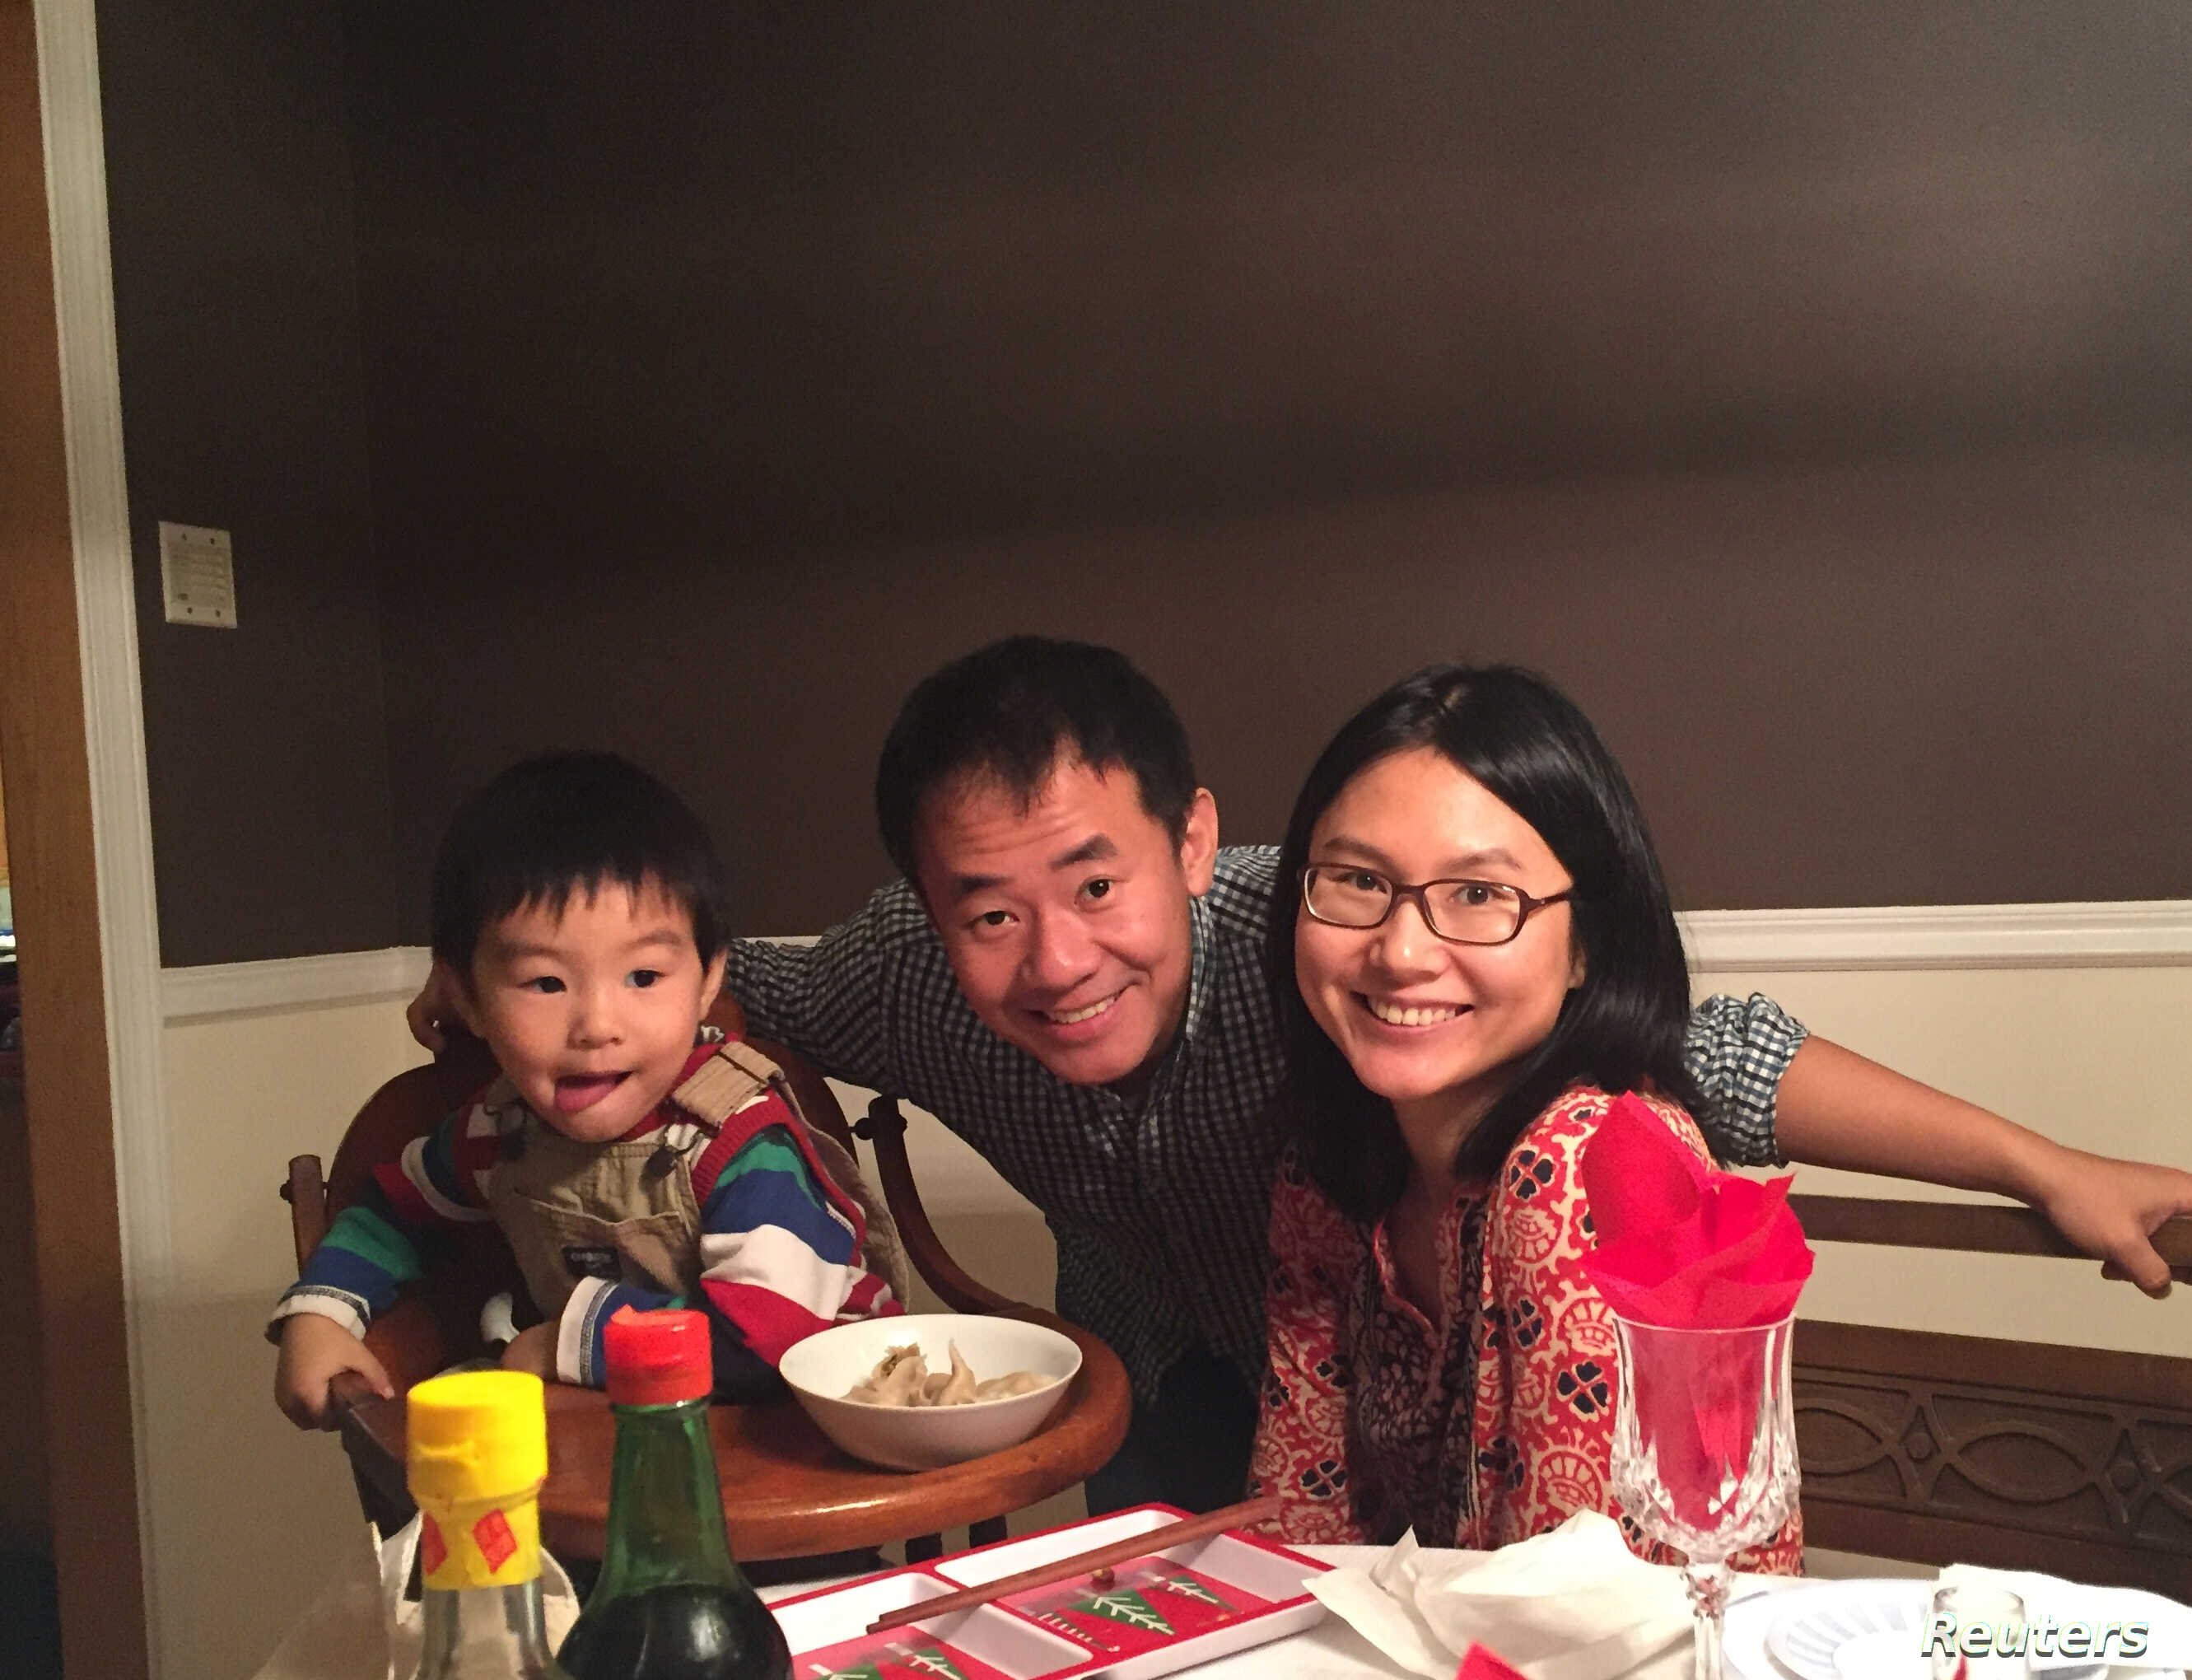 Xiyue Wang, a naturalized American citizen from China, arrested in Iran last August while researching Persian history for his doctoral thesis at Princeton University, is shown with his wife and son in this family photo released in Princeton, New Jers